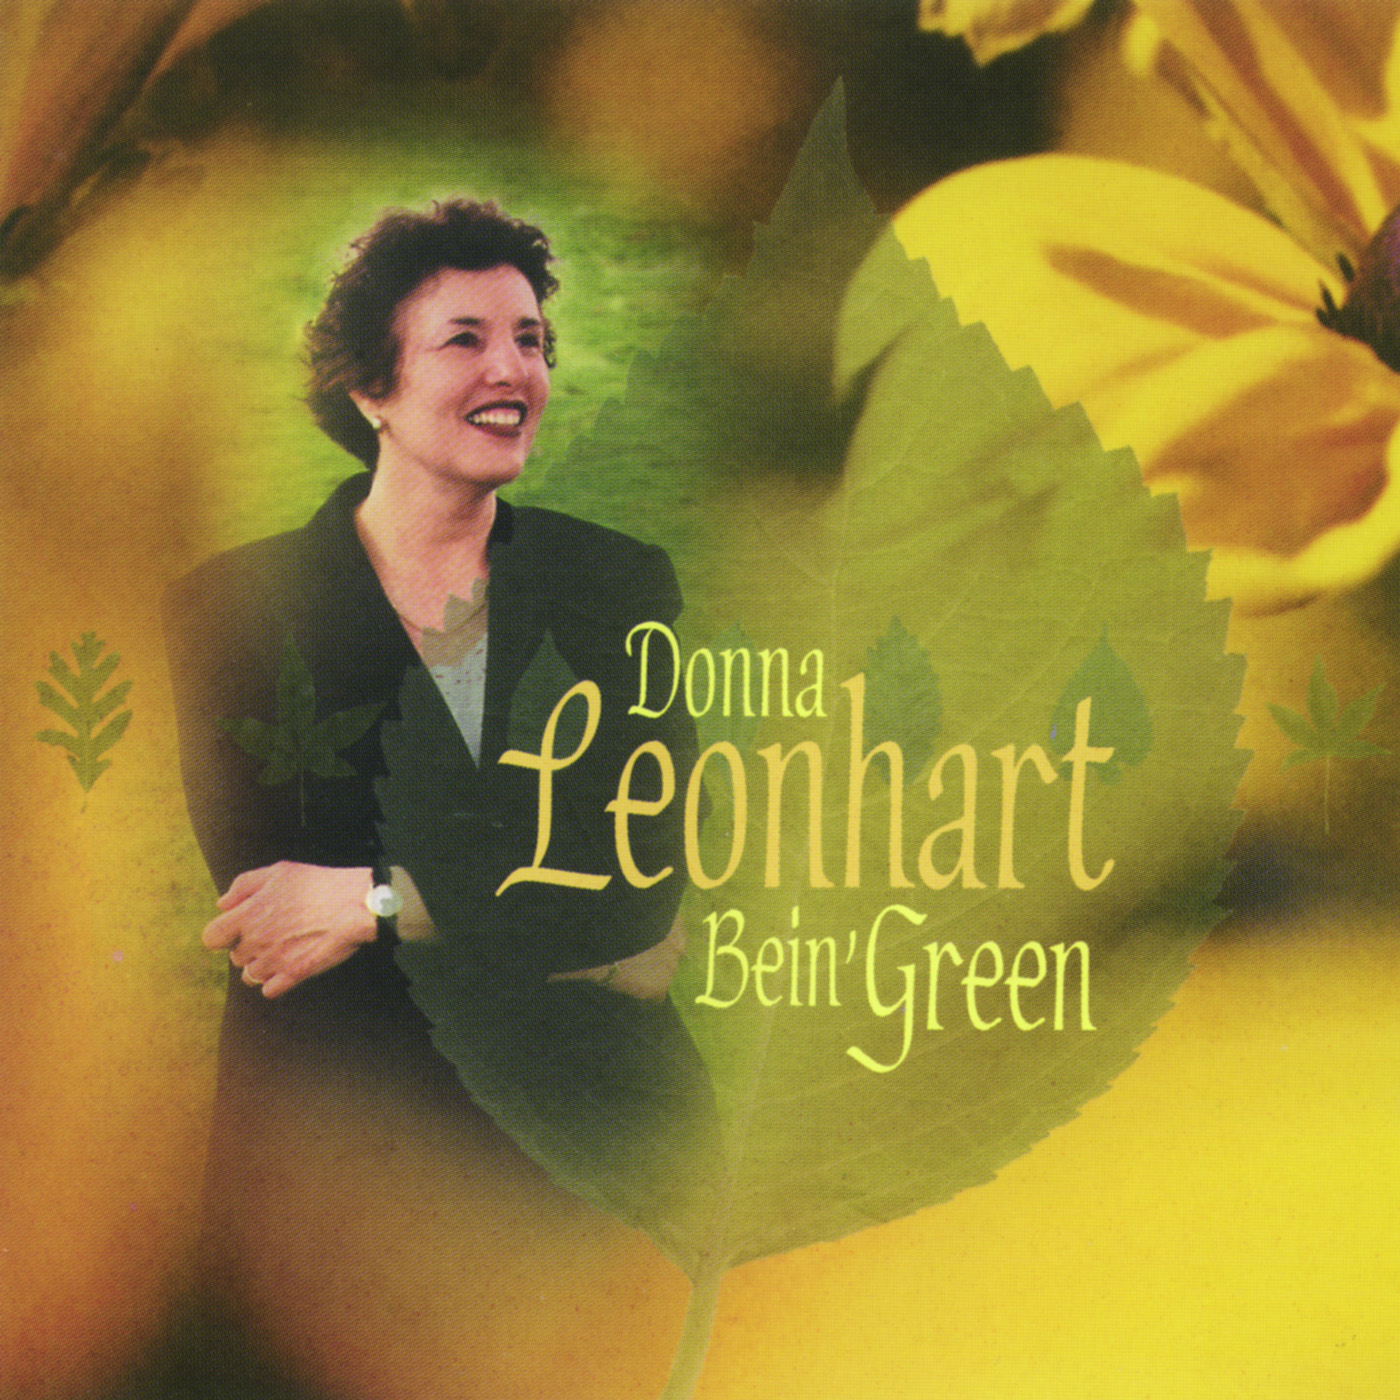 Bein' Green by Donna Leonhart cover